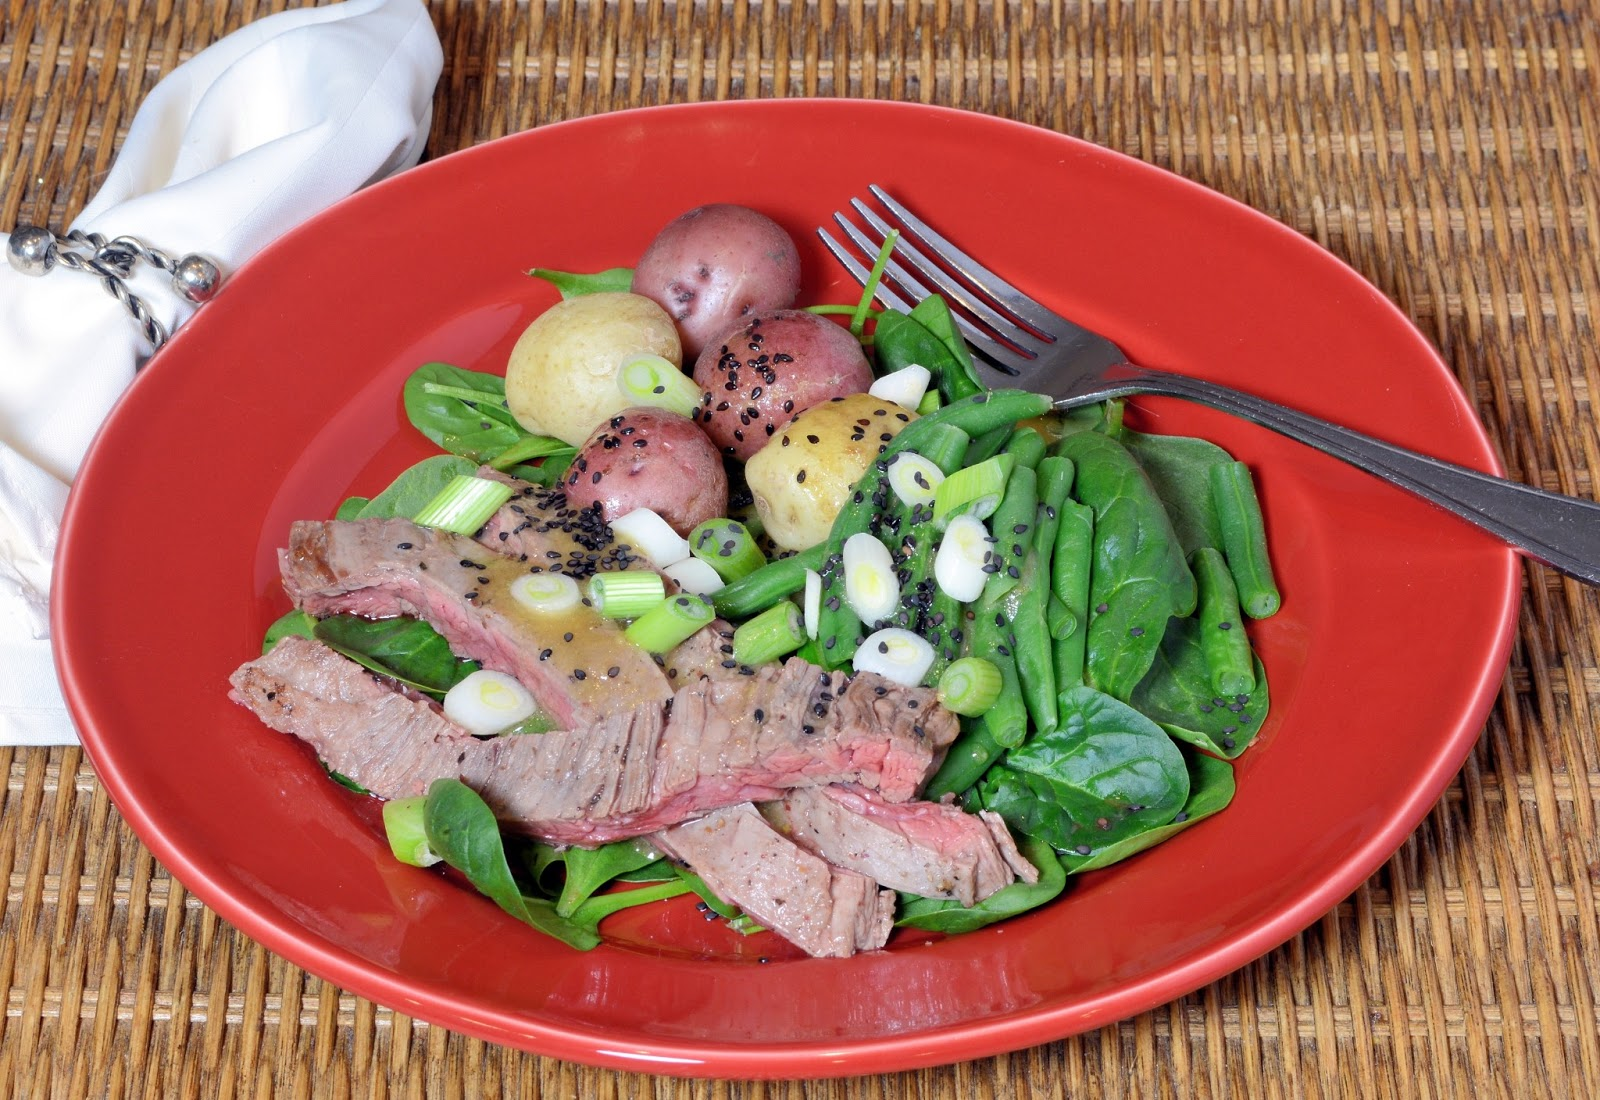 Hanger Steak Spinach Salad with Green Beans and Potatoes - Savory ...